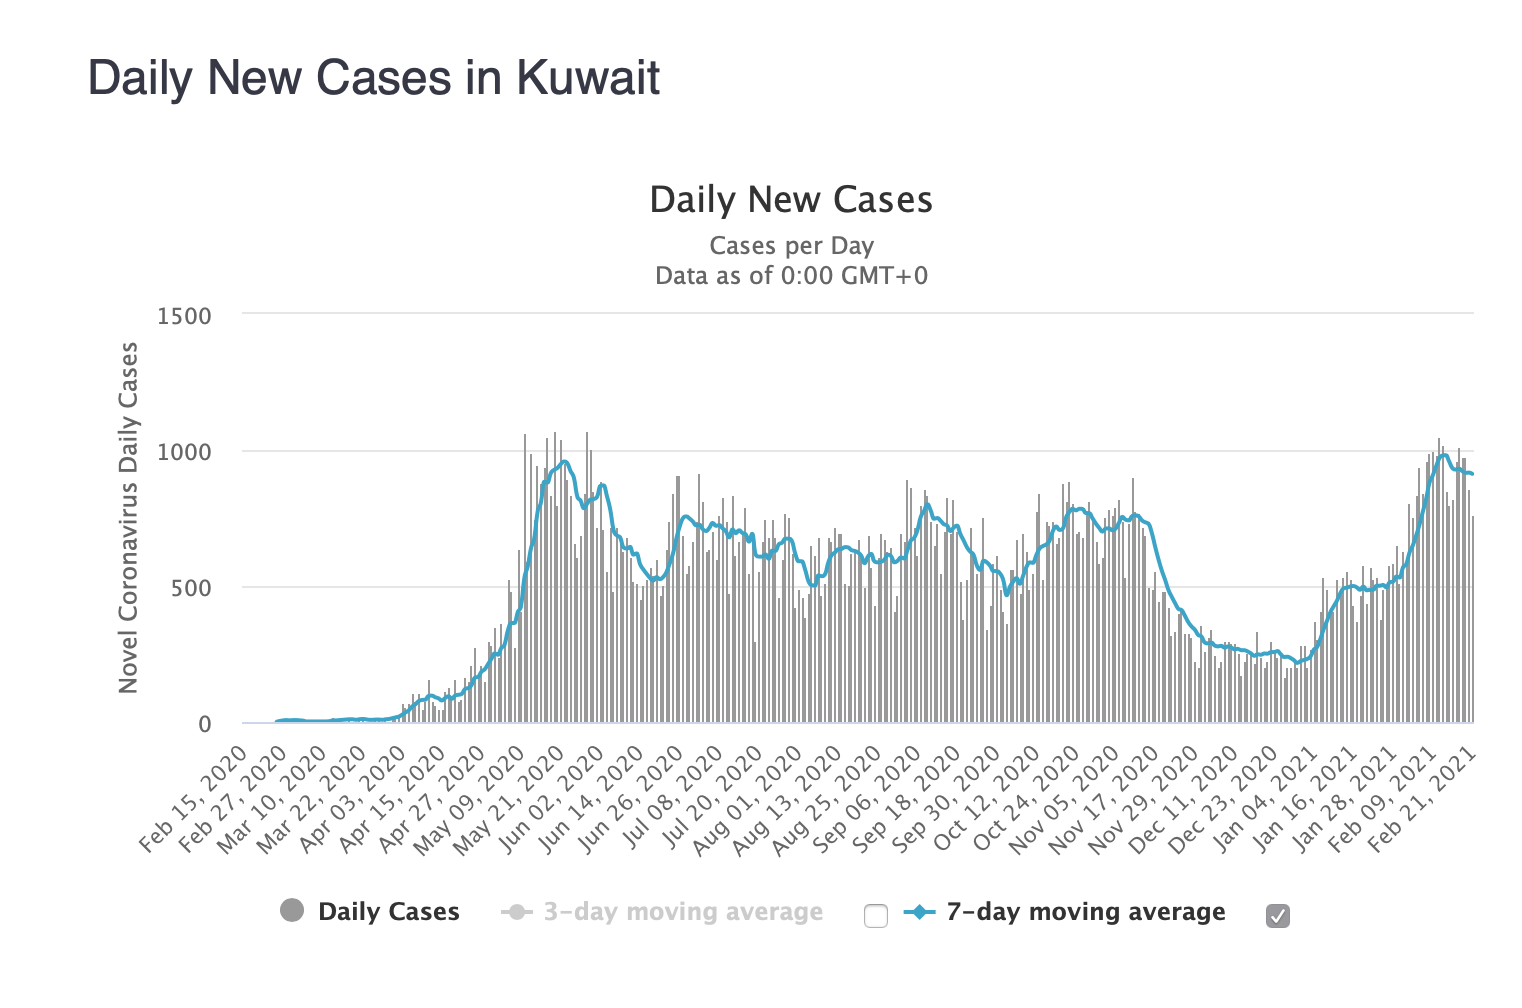 Kuwait daily new cases graph